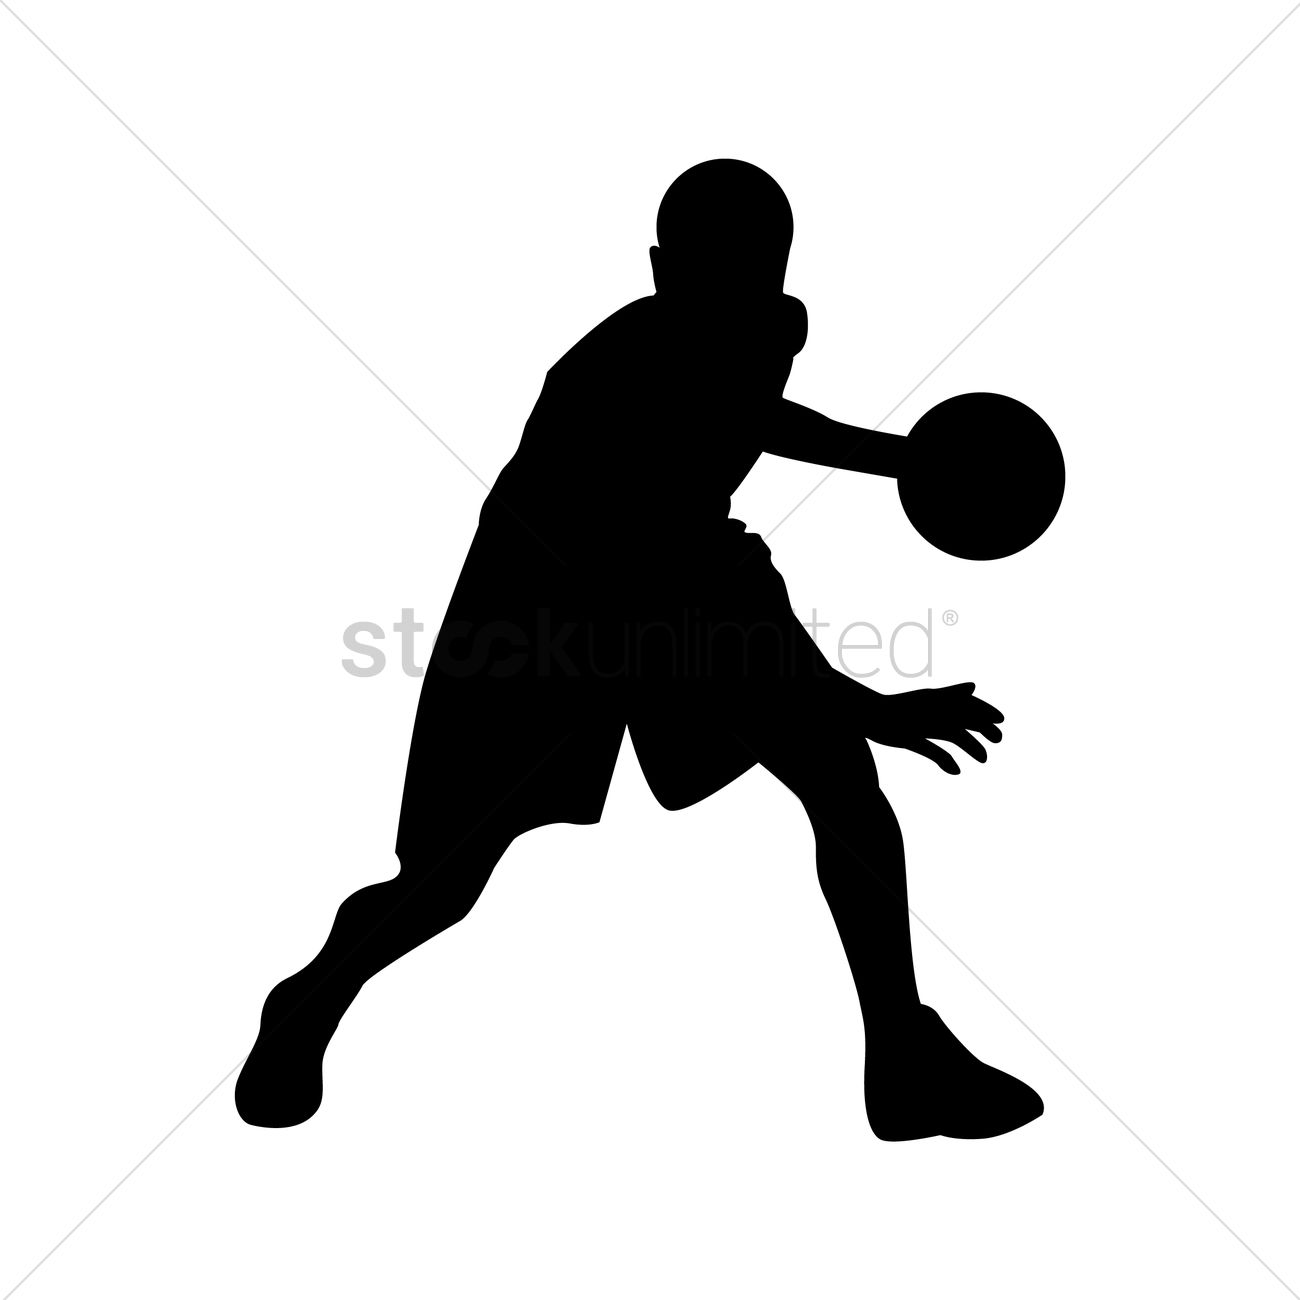 basketball silhouette clip art at getdrawings com free for rh getdrawings com basketball player clipart free girl basketball player clipart